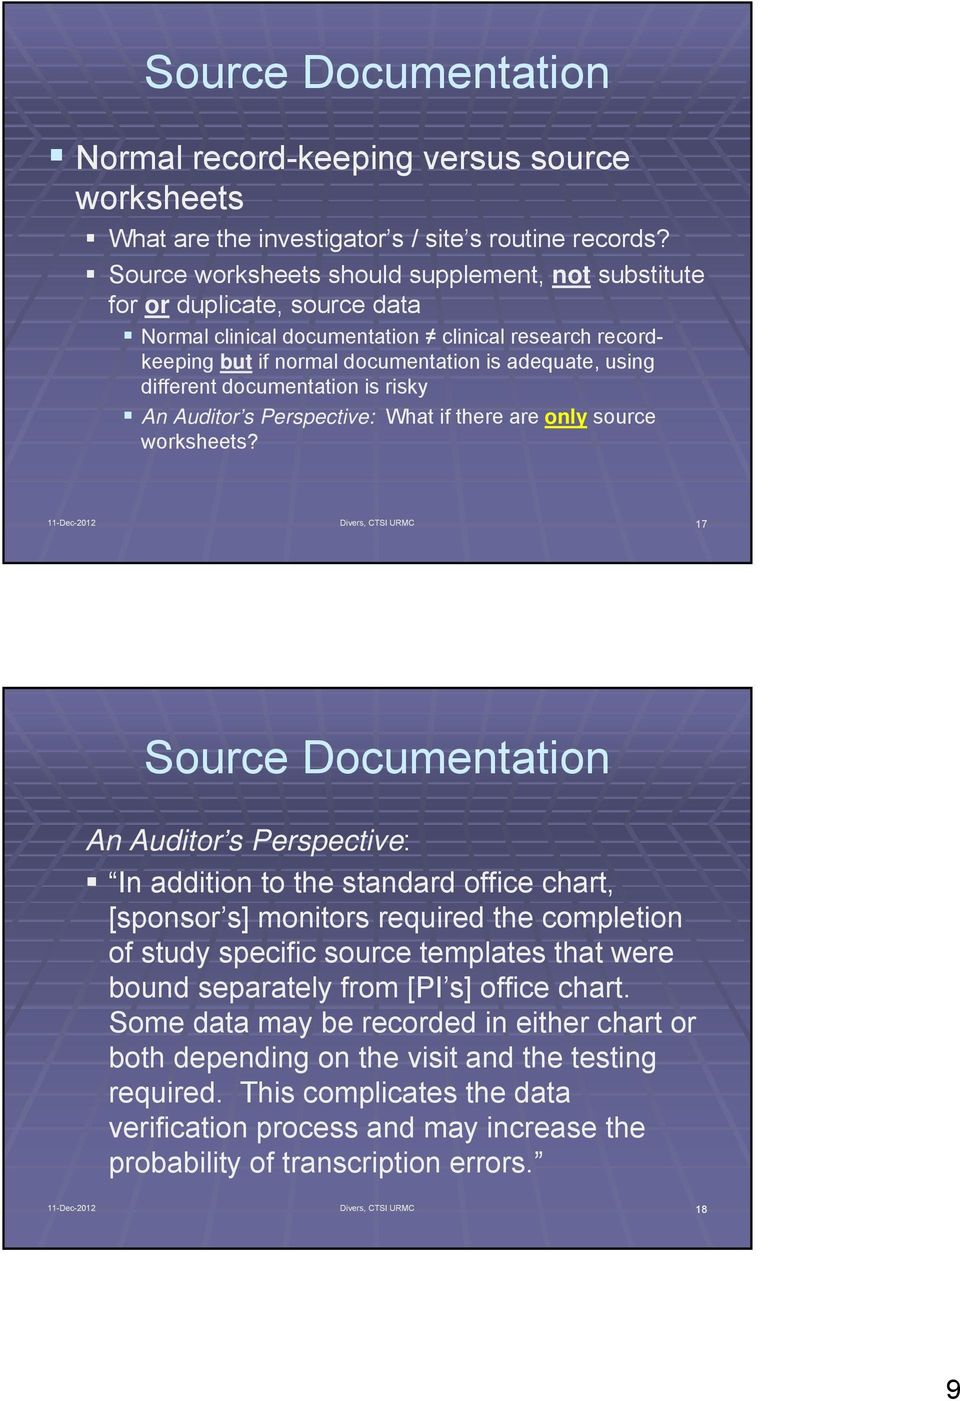 different documentation is risky An Auditor s Perspective: What if there are only source worksheets?